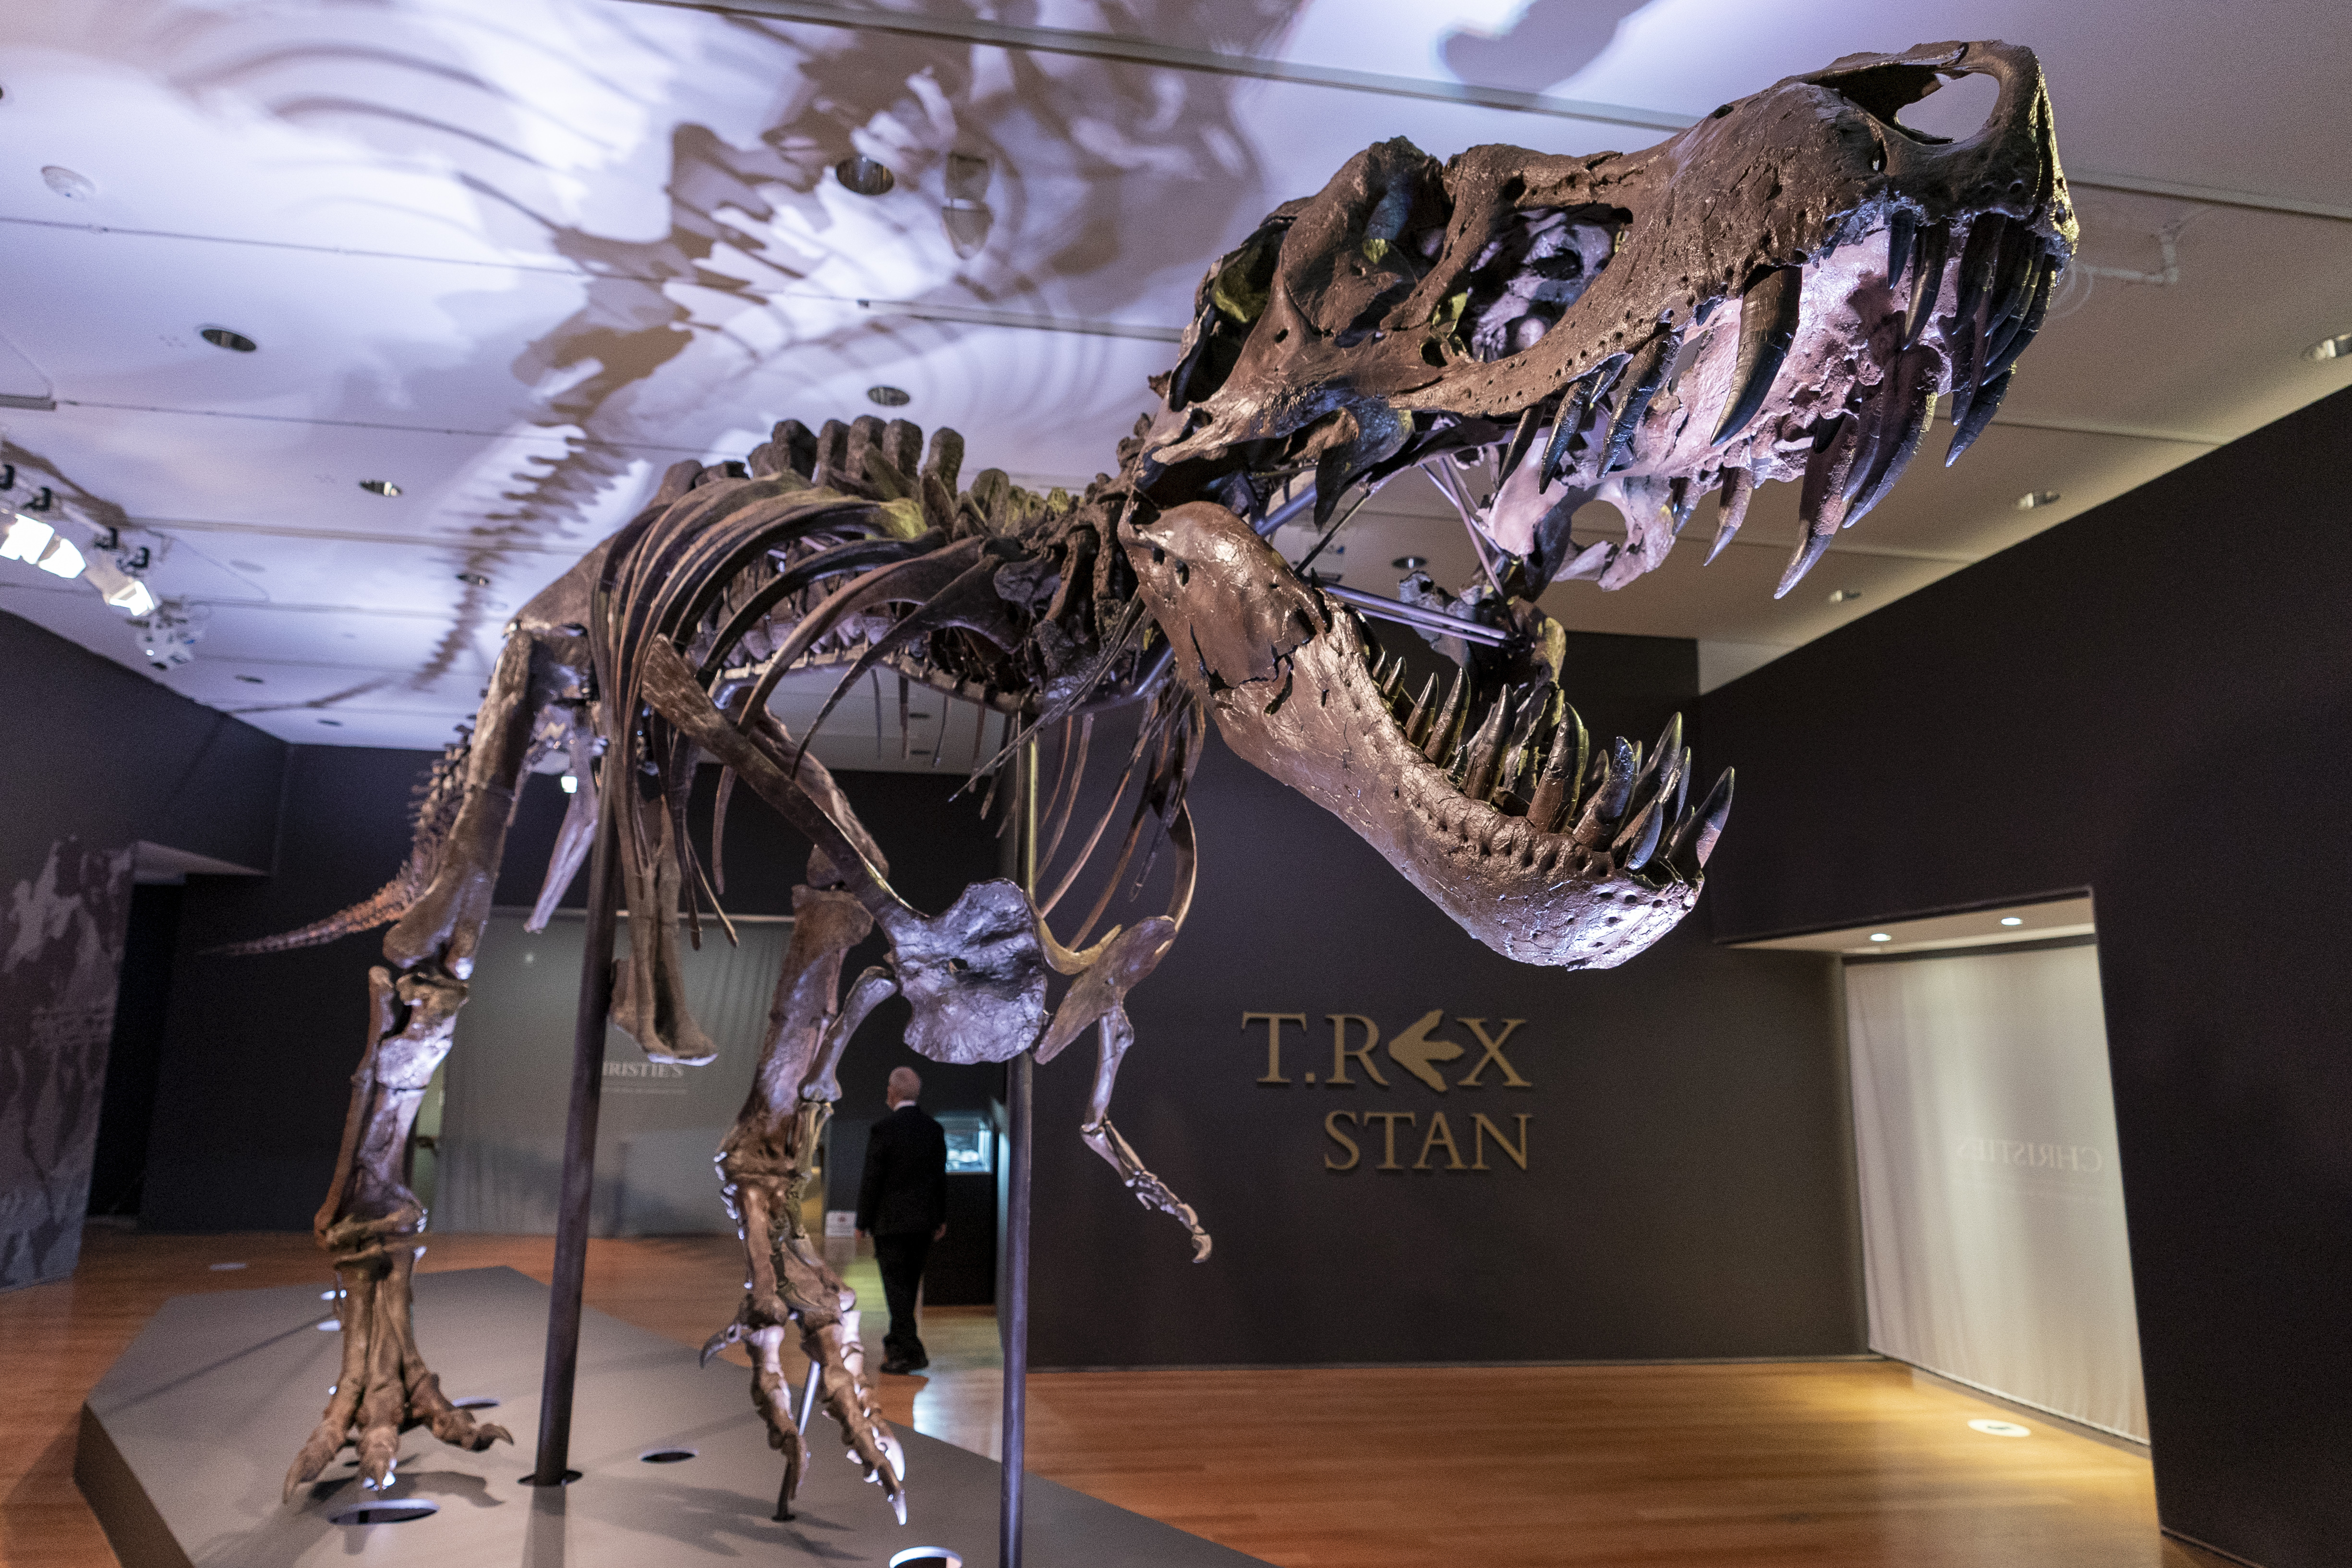 Stan, one of the largest and most complete Tyrannosaurus rex fossil discovered, is pictured on display in New York.